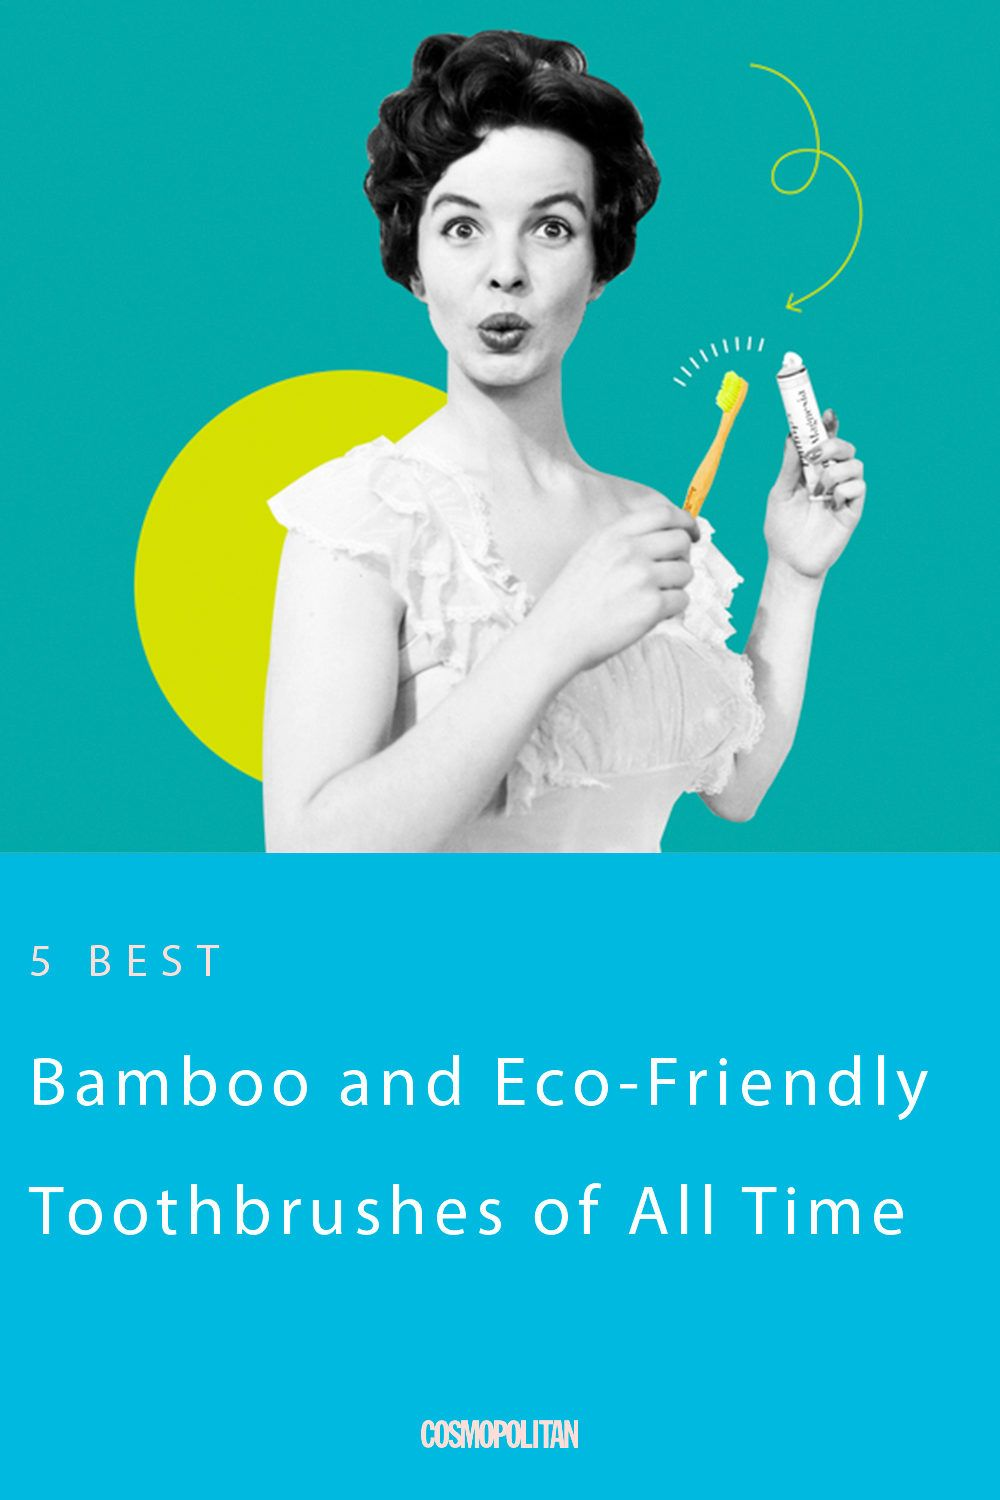 5 Best Bamboo and Eco-Friendly Toothbrushes of All Time